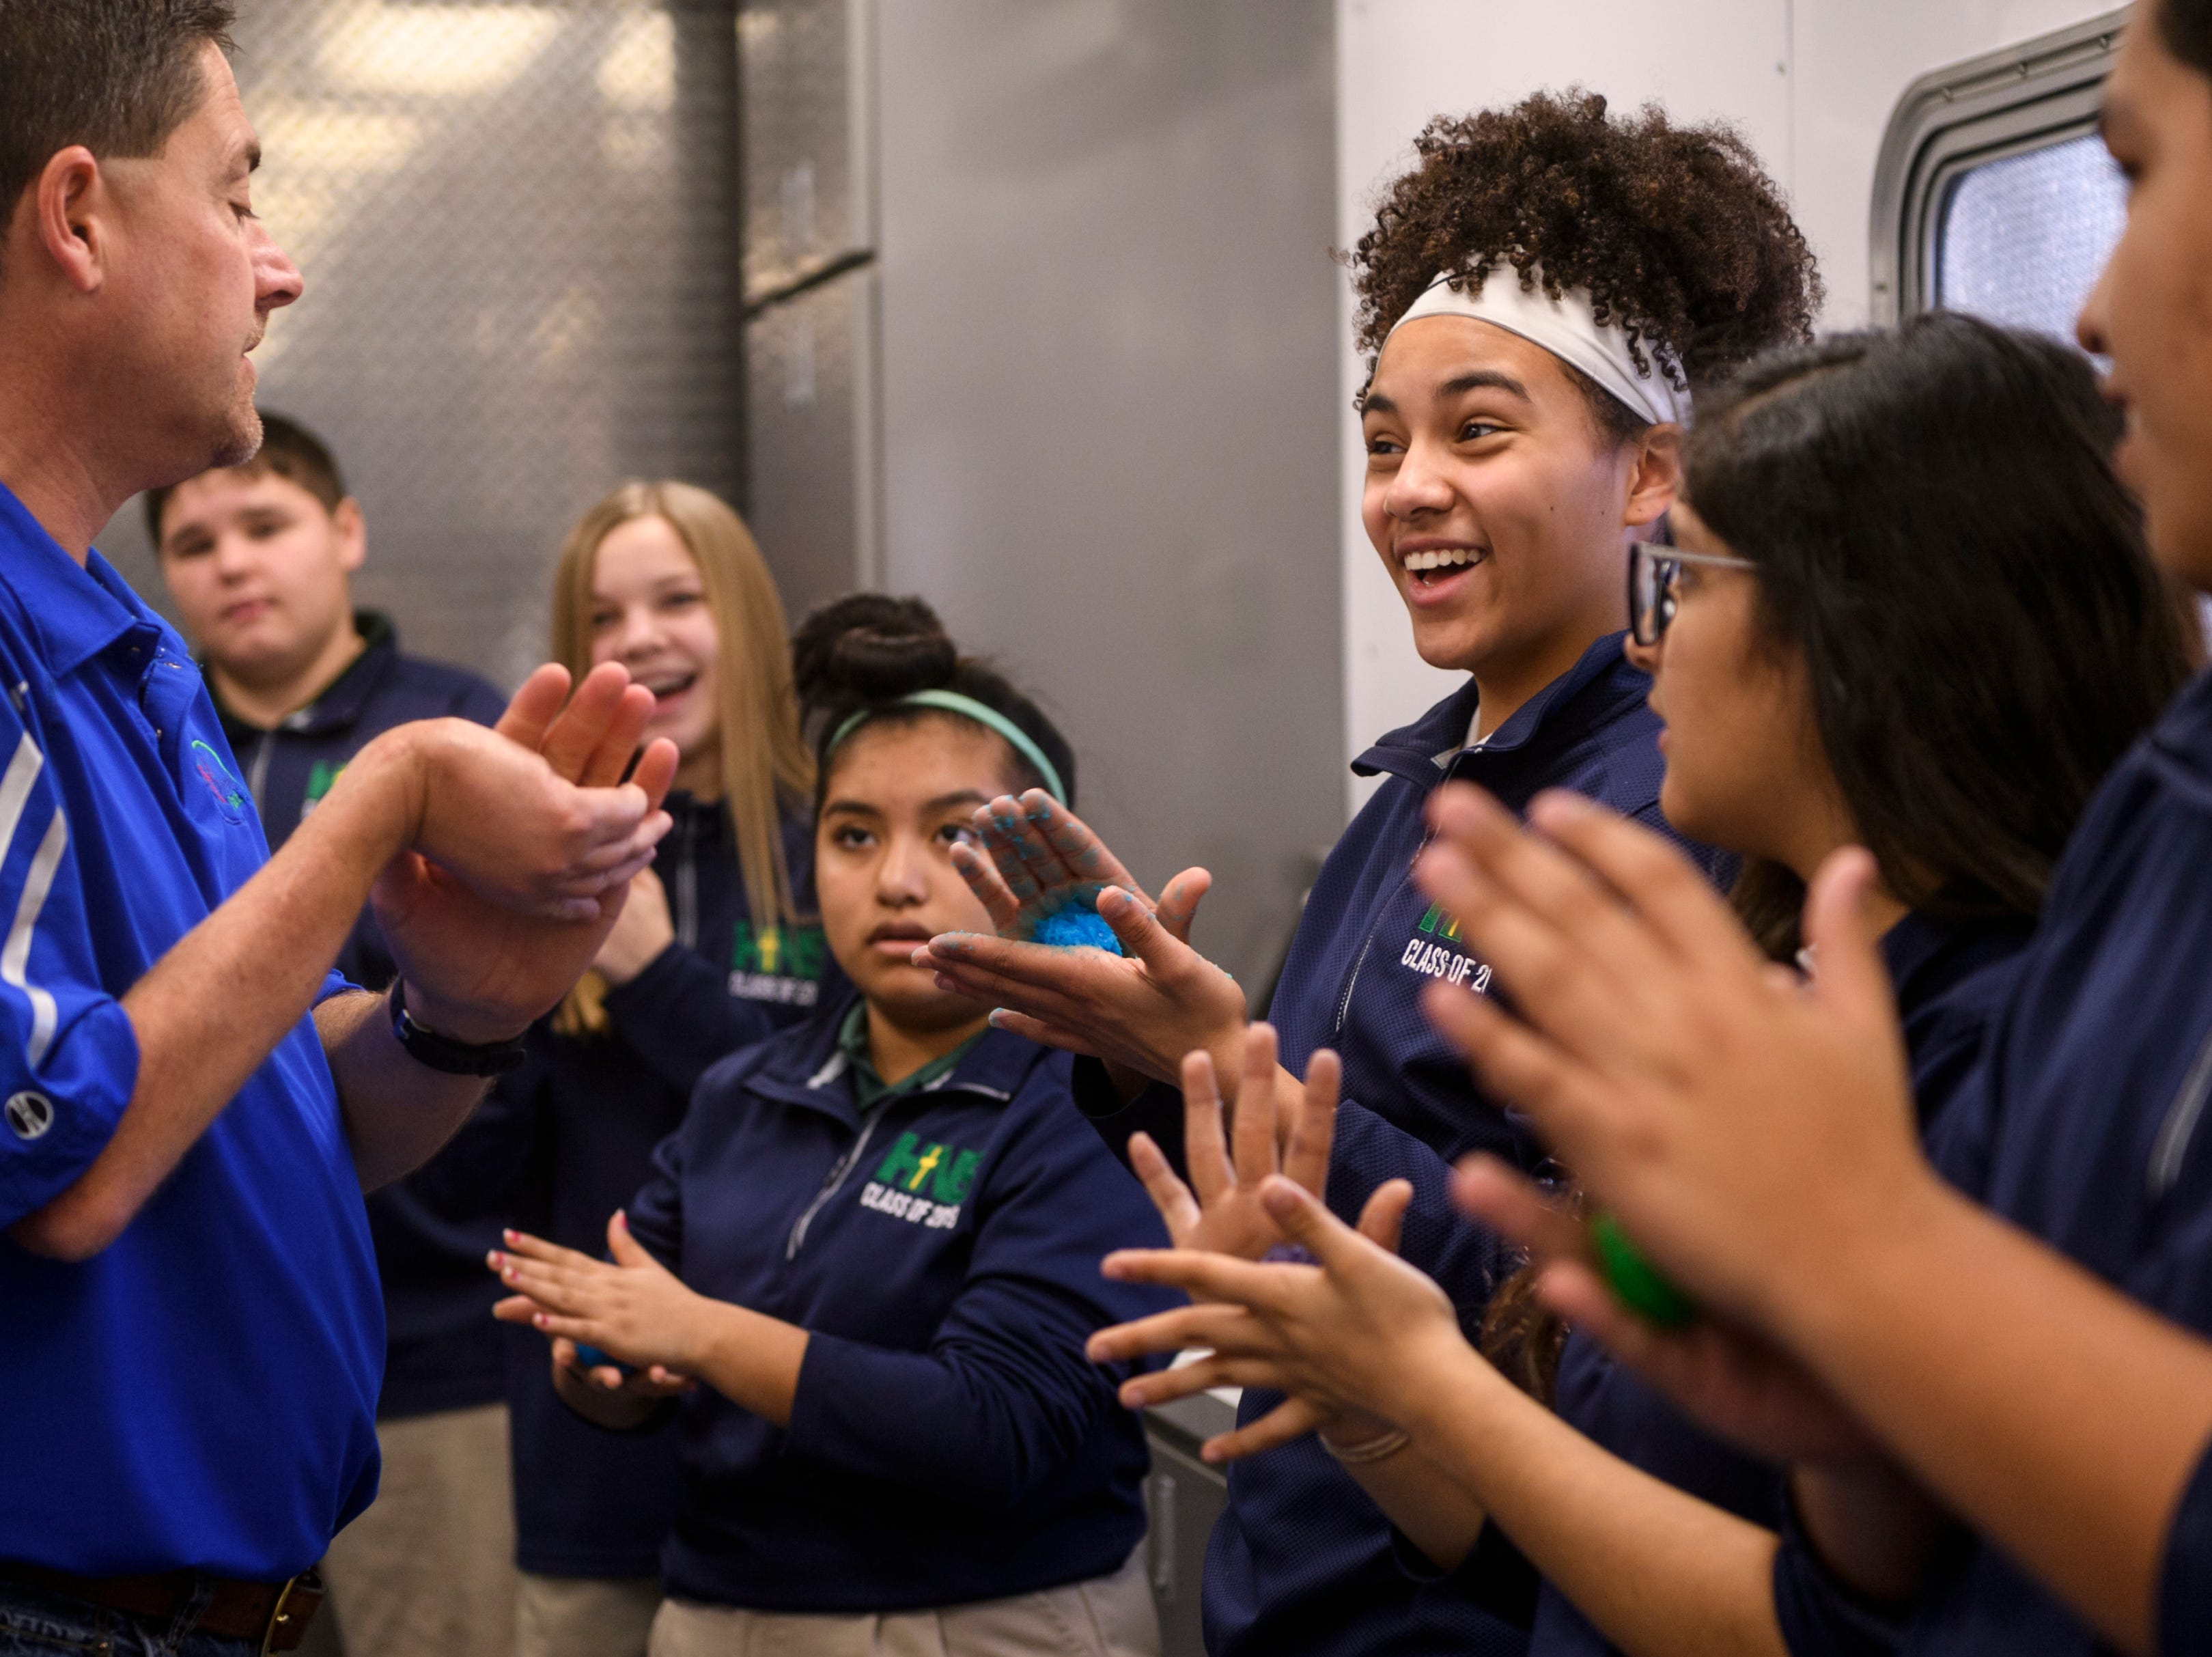 Eighth-grader Jolie Caron, center right, and her classmates shape biodegradable corn plastic into bouncy balls after following instructions from Program Coordinator Jason Hodge, left, inside the Kentucky Department of Agriculture Mobile Science Activity Center parked outside of Holy Name School in Henderson, Ky., Wednesday, Jan. 9, 2019. Hodge hauls the 44-foot trailer, that can accommodate up to 30 students at a time, to schools around Kentucky to teach hand-on science experiments. Holy Name School worked in partnership with Henderson Community College's Agriculture and Education departments to bring the bus to the school for several school days.